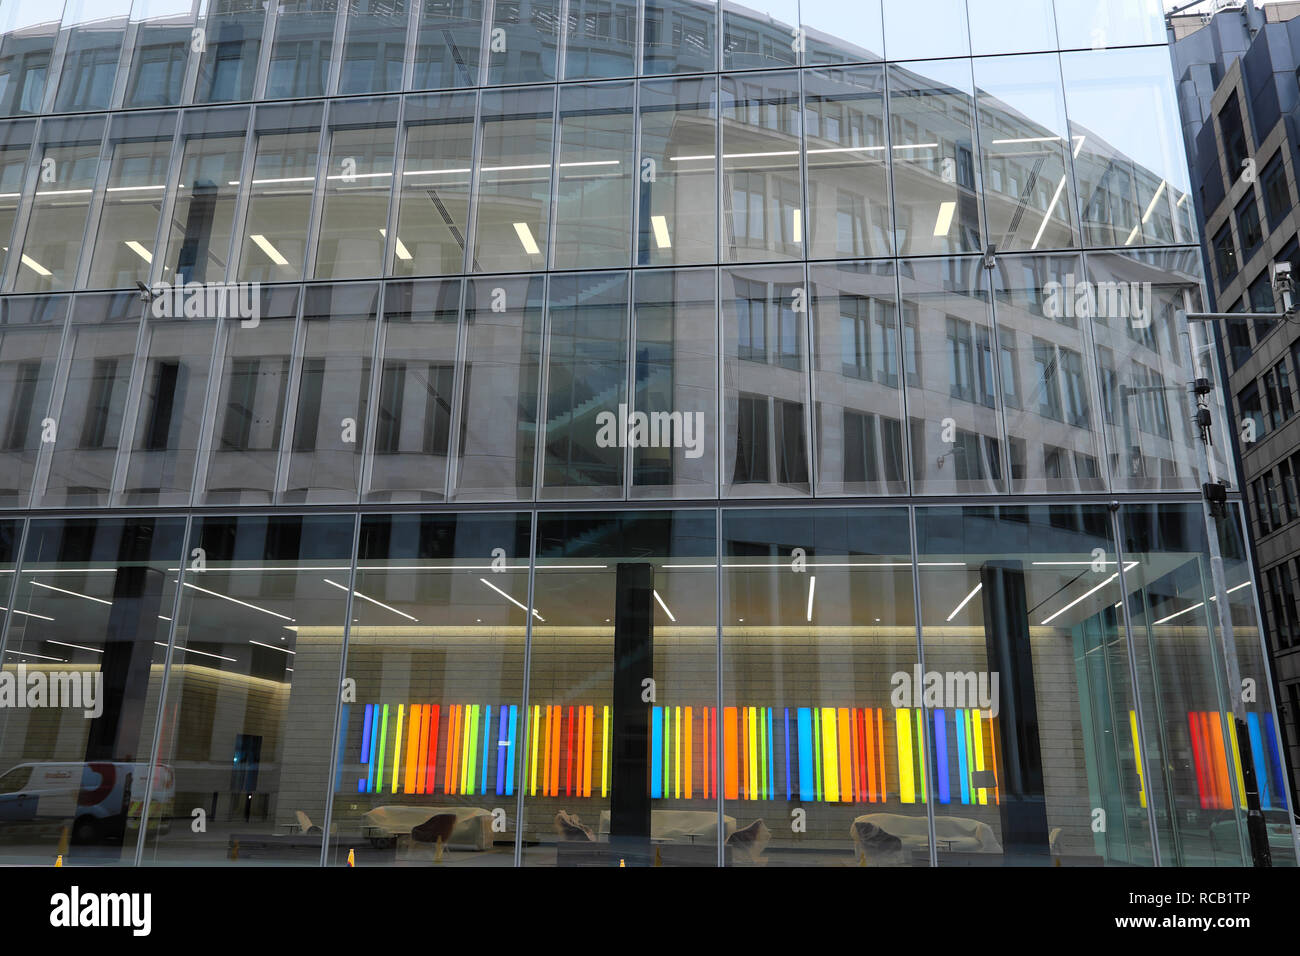 One Bartholomew Close new Barts Hospital building exterior facade at Little Britain with colourful neon artwork City of London UK  KATHY DEWITT - Stock Image